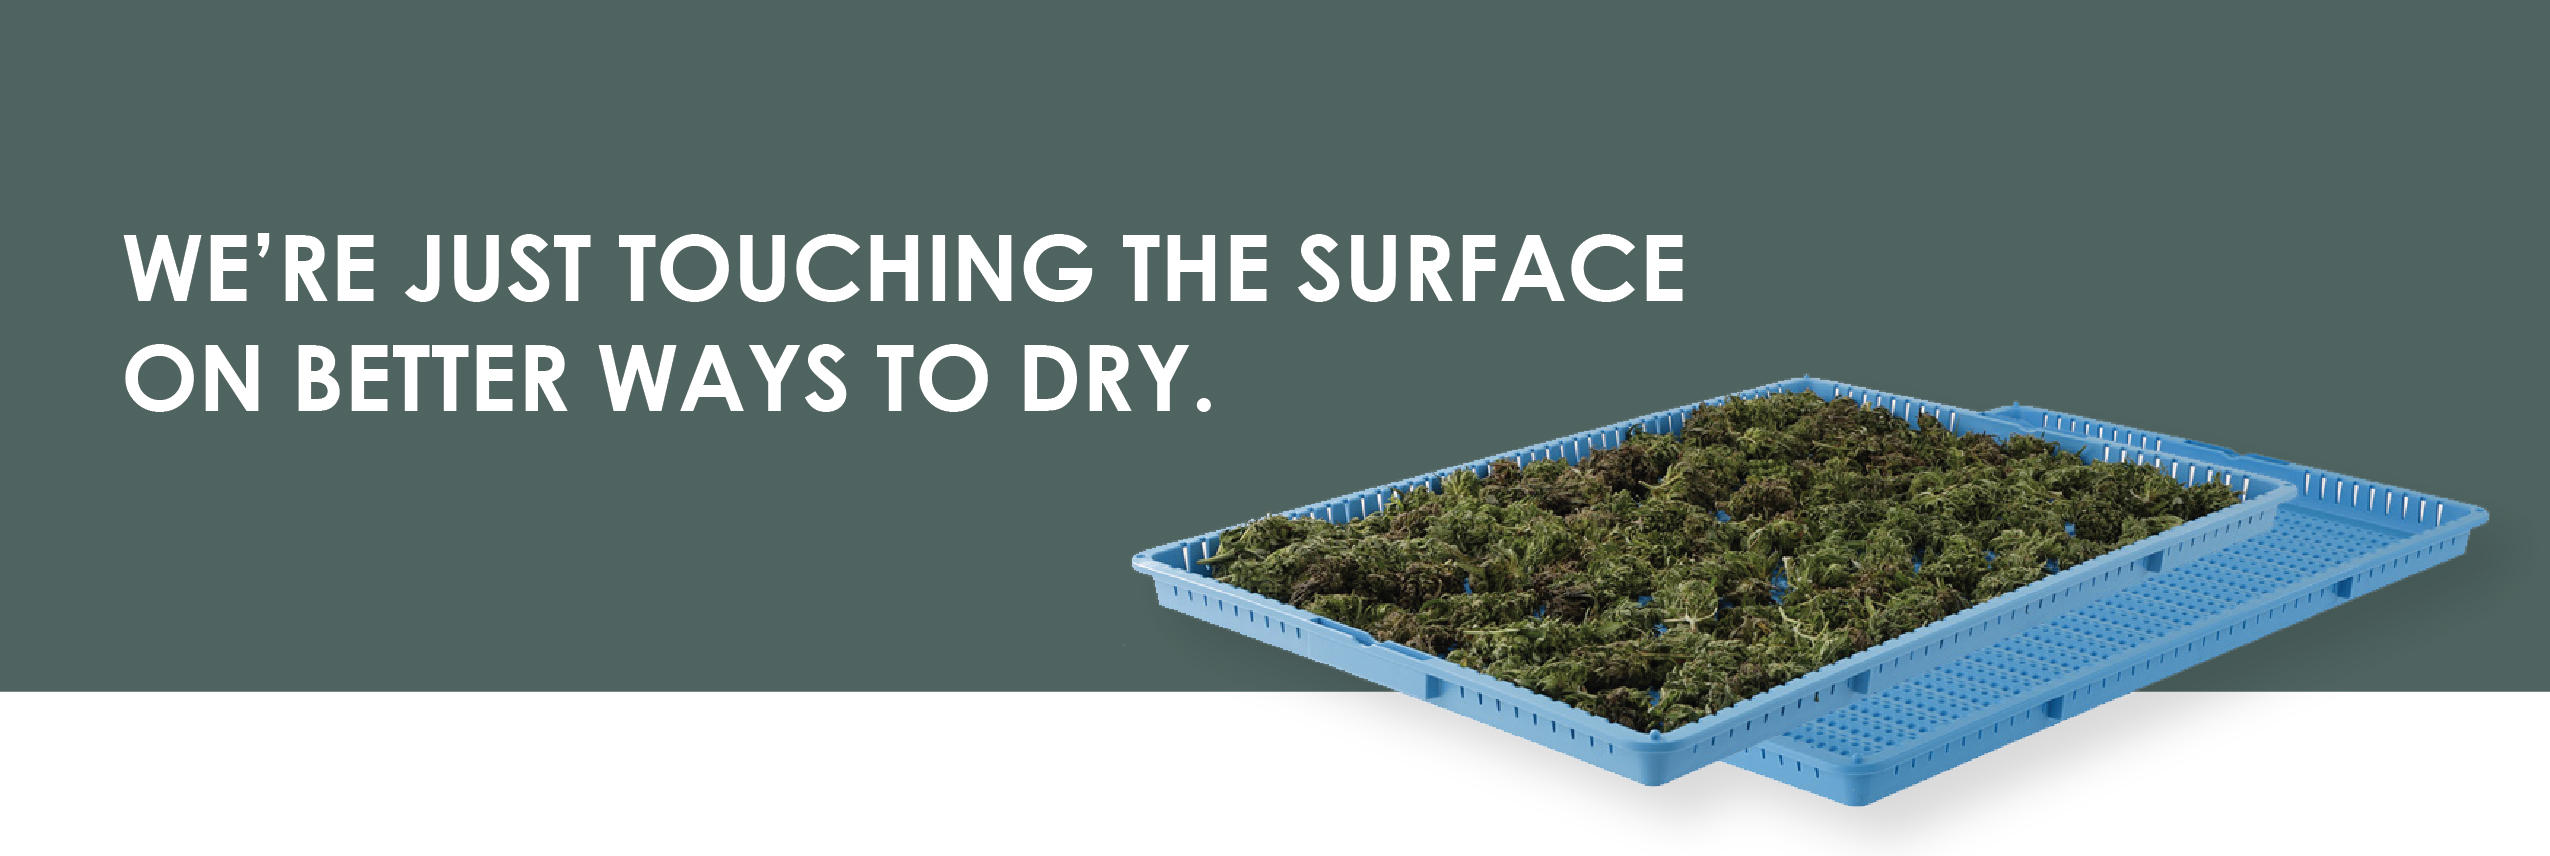 WE'RE JUST TOUCHING THE SURFACE ON BETTER WAYS TO DRY.